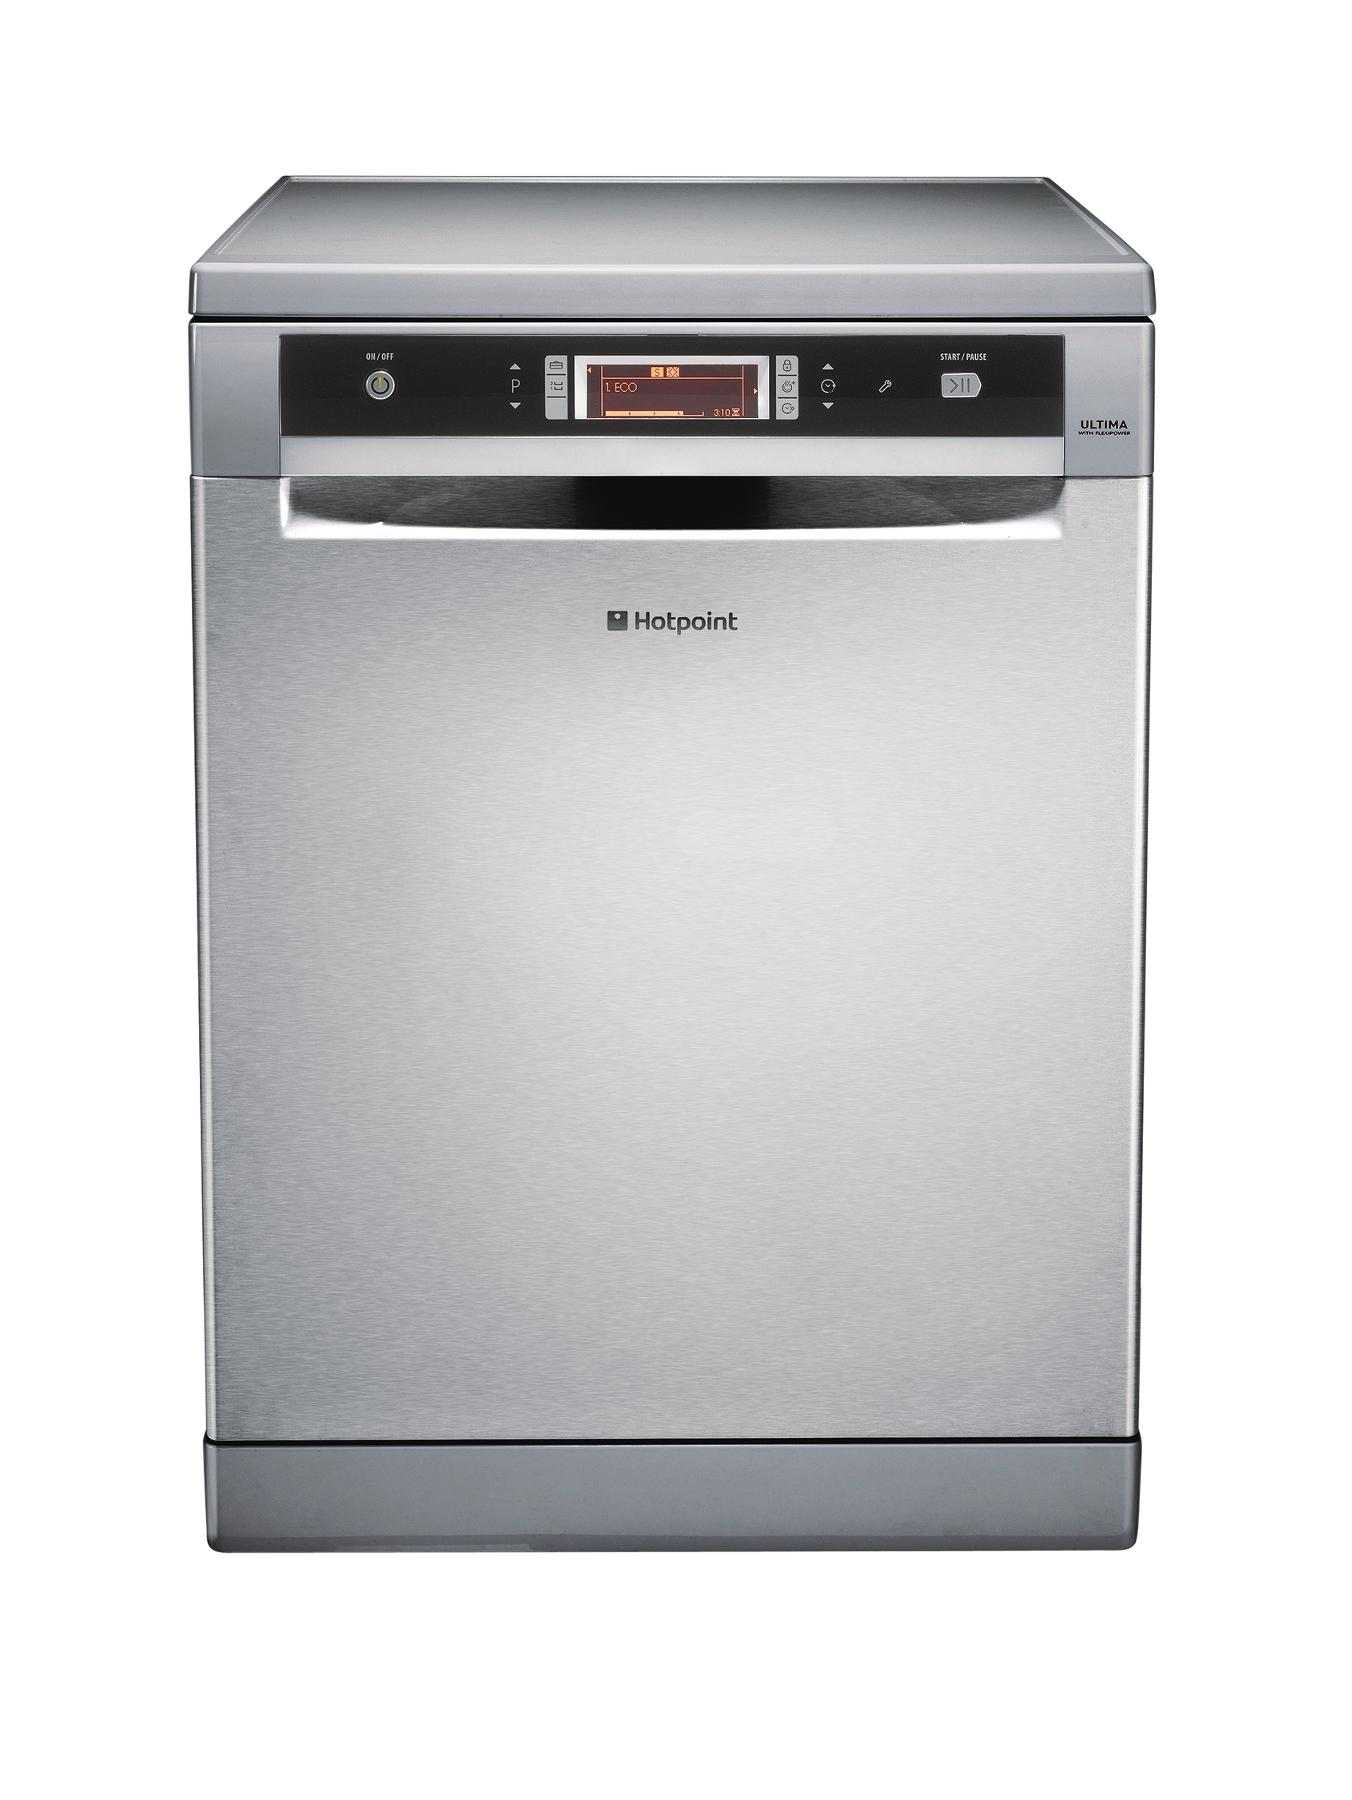 FDUD44110X Ultima Dishwasher - Stainless Steel